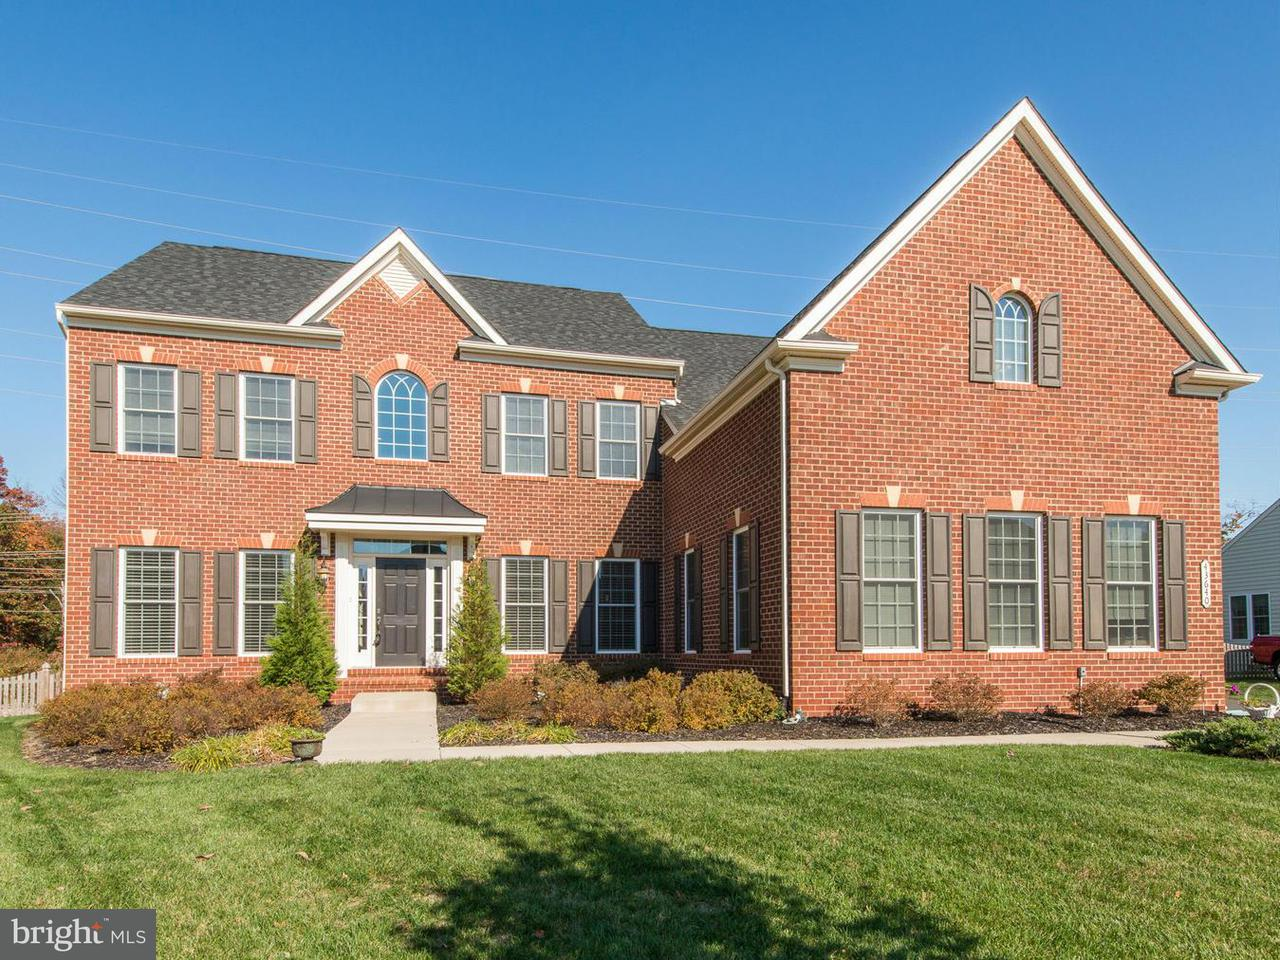 Single Family Home for Sale at 43640 MEADOW OVERLOOK Place 43640 MEADOW OVERLOOK Place Ashburn, Virginia 20147 United States